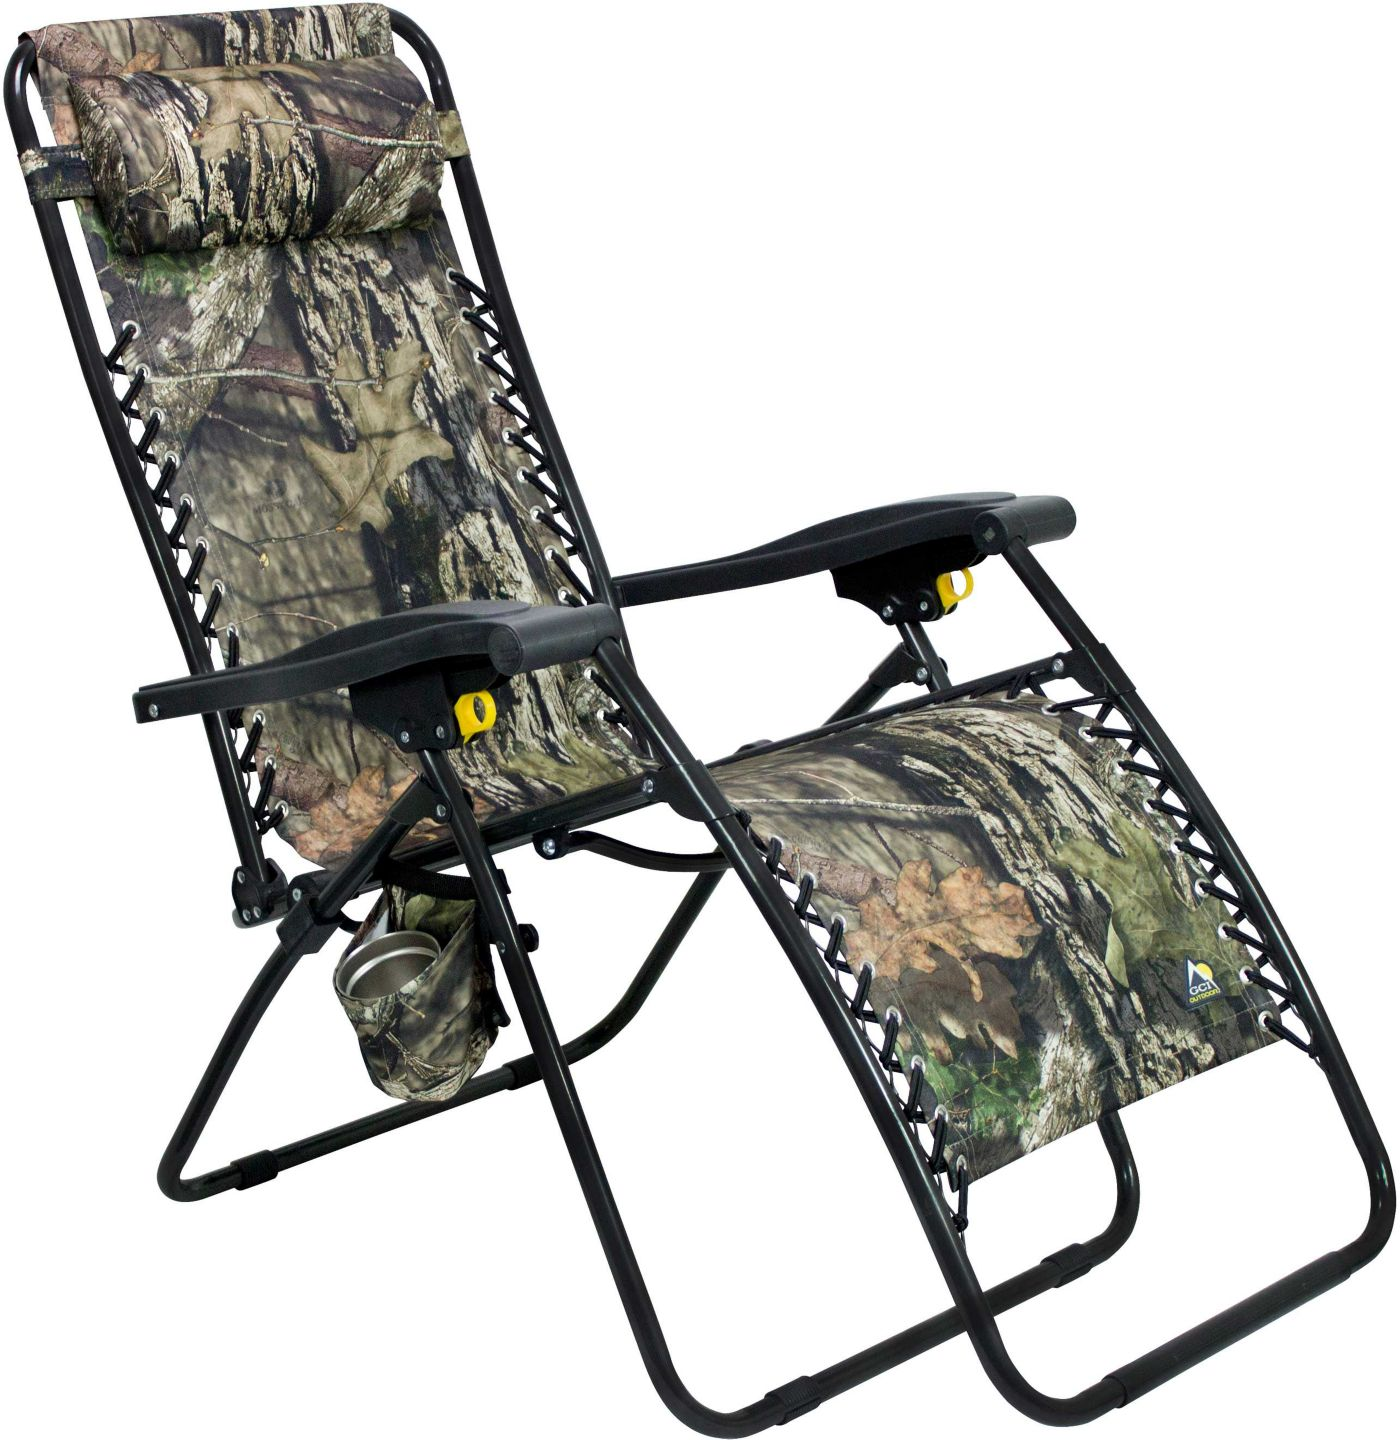 GCI Outdoor Zero Gravity Mossy Oak Chair